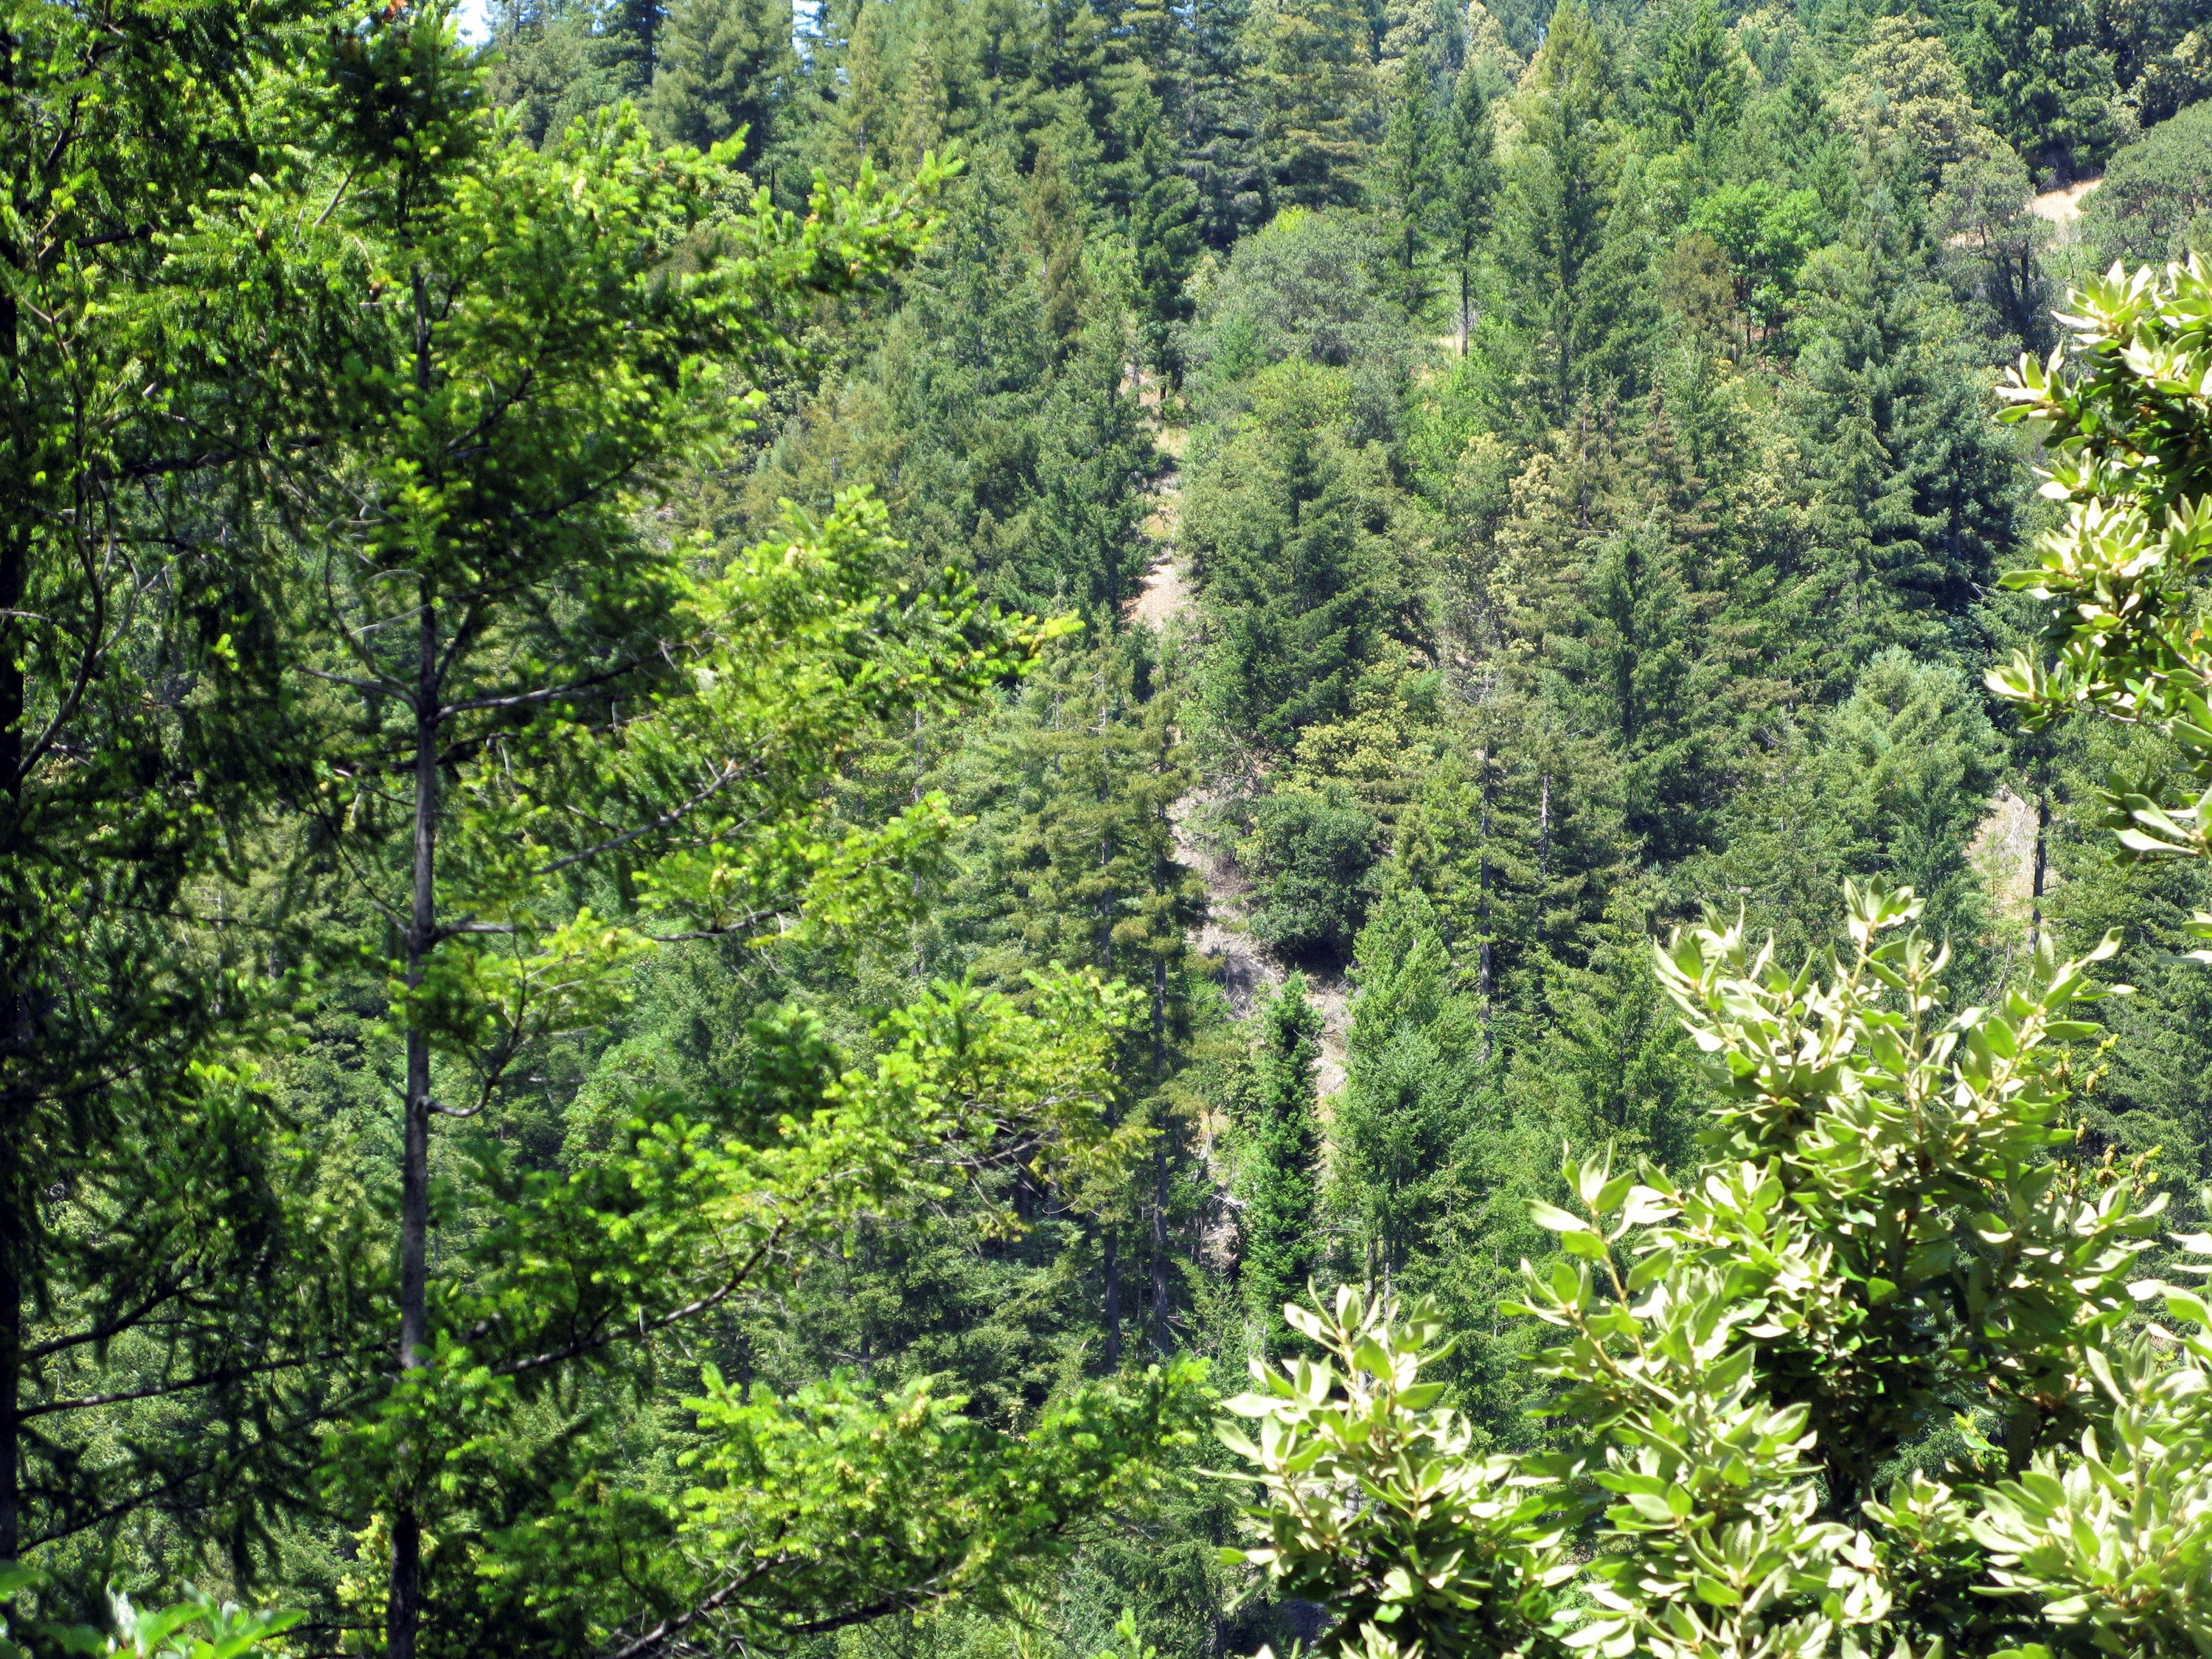 A view of the Garcia River Forest near Longvale, California July 27, 2009. The trees which trap quantities of the carbon dioxide that is warming the planet are sold as living carbon traps or